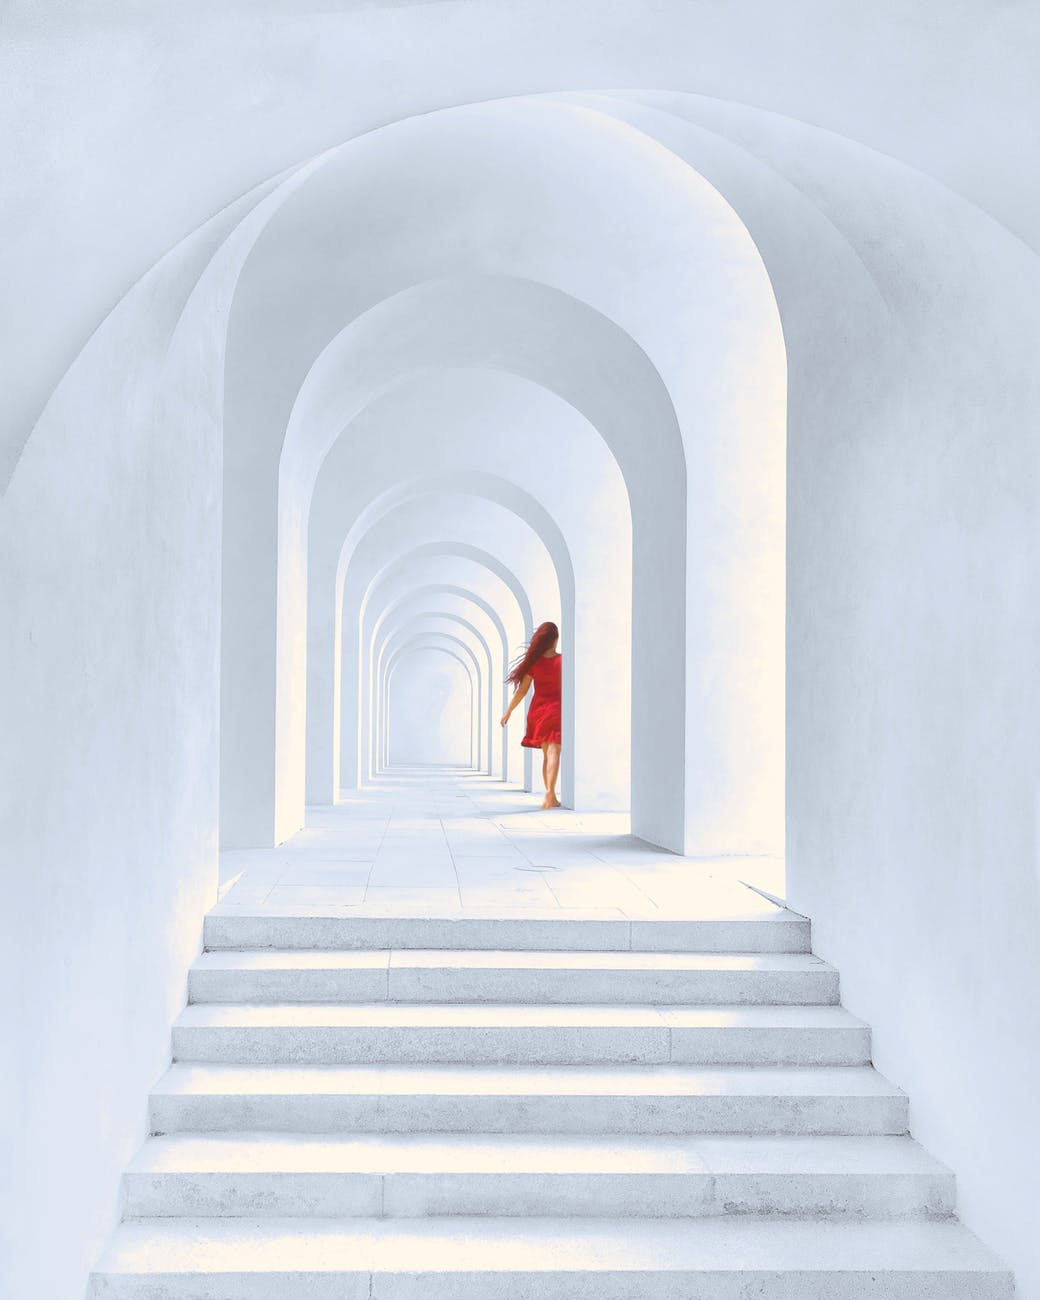 woman in red dress standing in white arch building